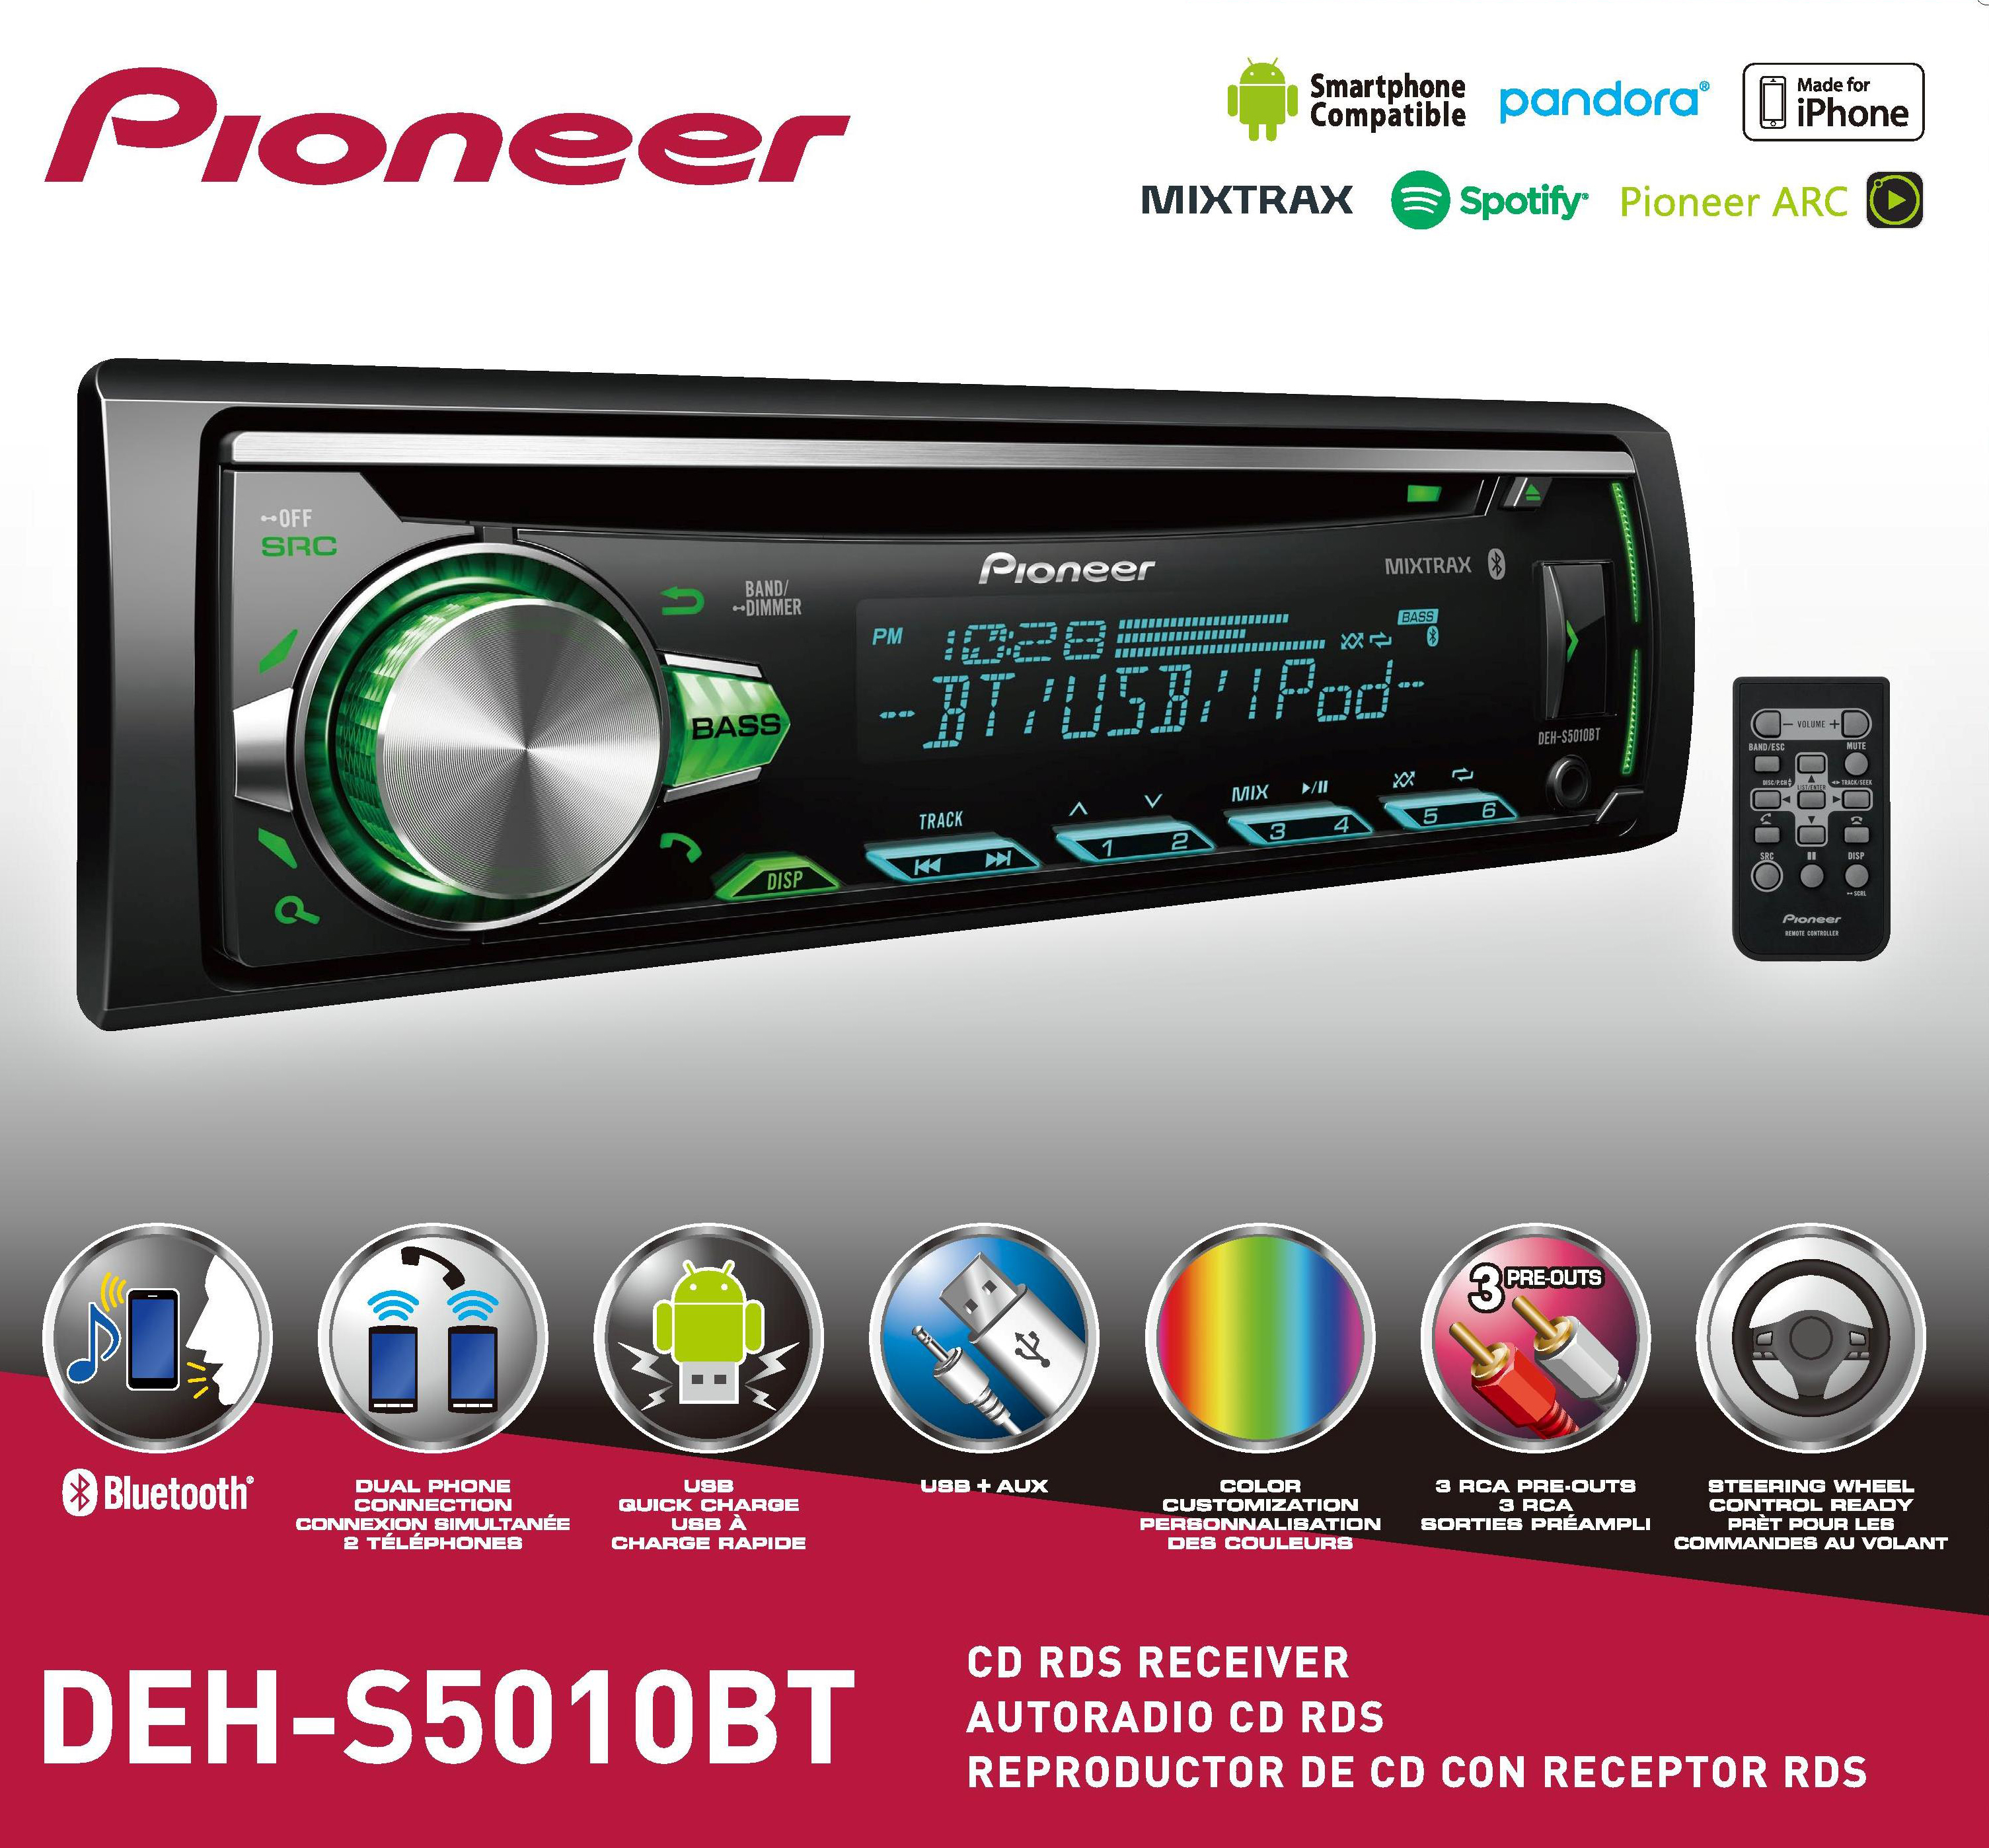 Wiring Diagram For Pioneer Deh S5010bt Schematics Diagrams Walmart Car Stereo Harness Bluetooth Single Cd Receiver Com Rh Colors Connector